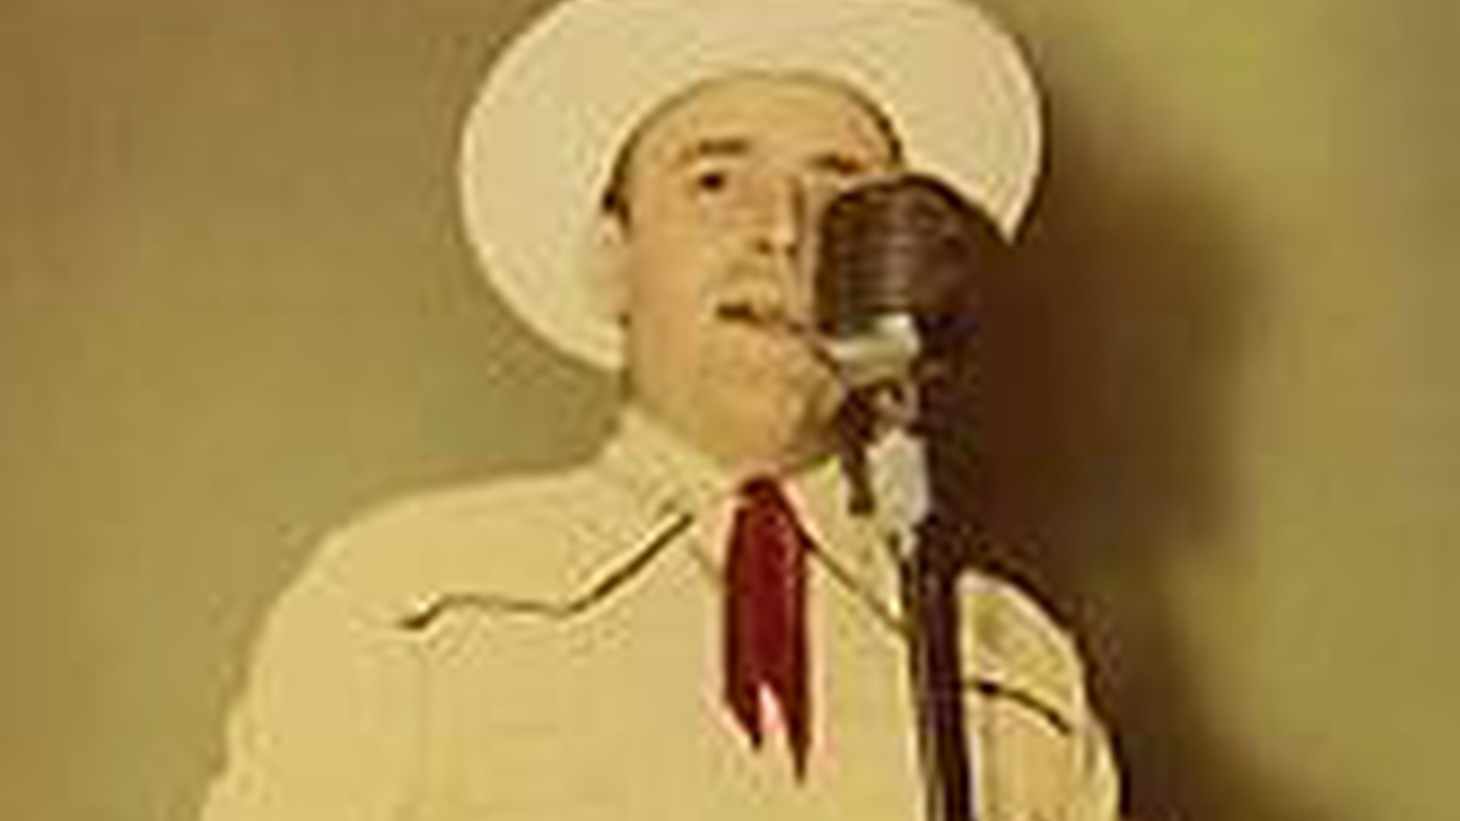 The man who fused fiddle and jazz blazed musical trails followed by country and rock musicians today.